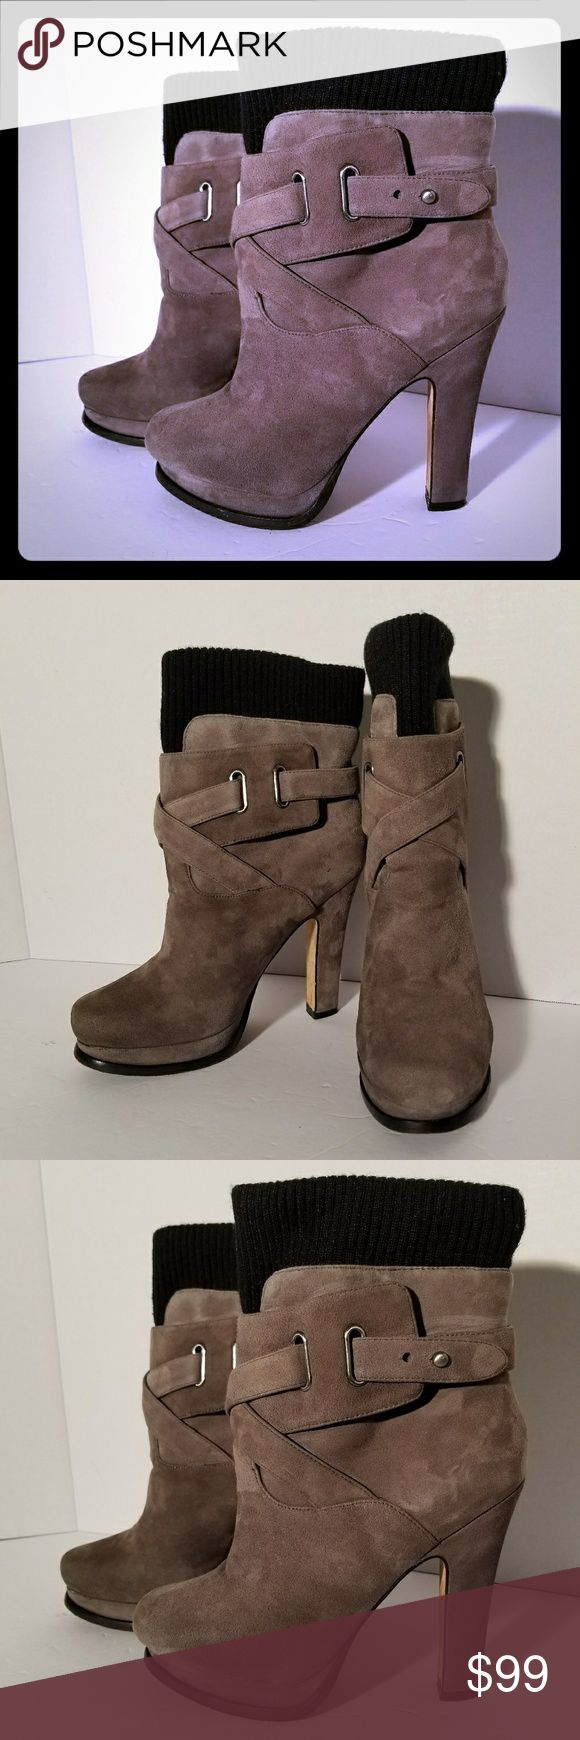 Joan & David Beesley Booties Joan & David Beesley Grey Suede Black Cuff Designer Platform Ankle Boots Cross Cross Strap. The Top is a Black Sweater Material Cuff Which Give These a Really Cool Look!! Joan & David Shoes Ankle Boots & Booties